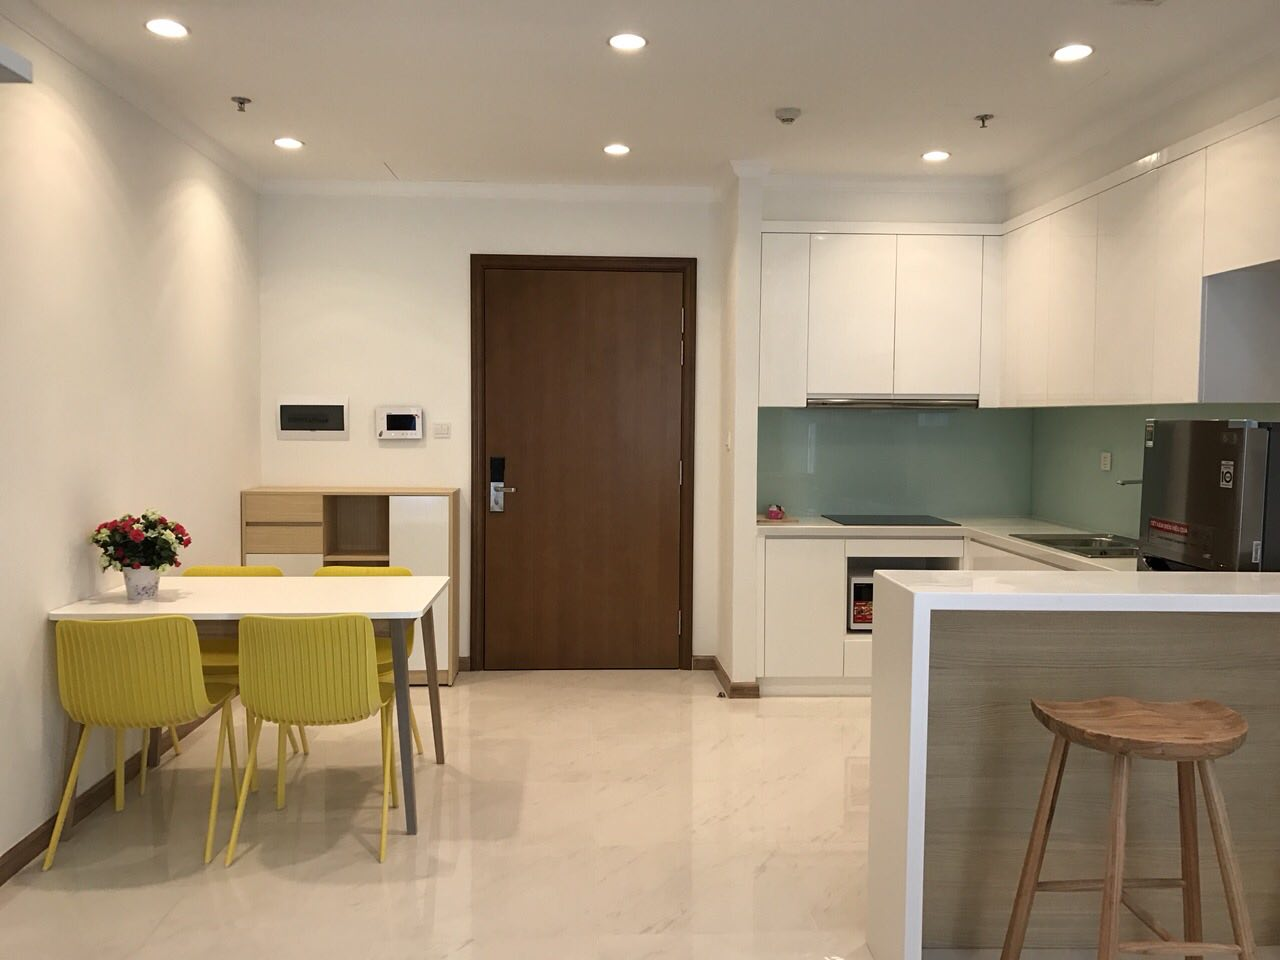 apartment for rent in vinhomes district 2 HCMC  BT1051165(2)